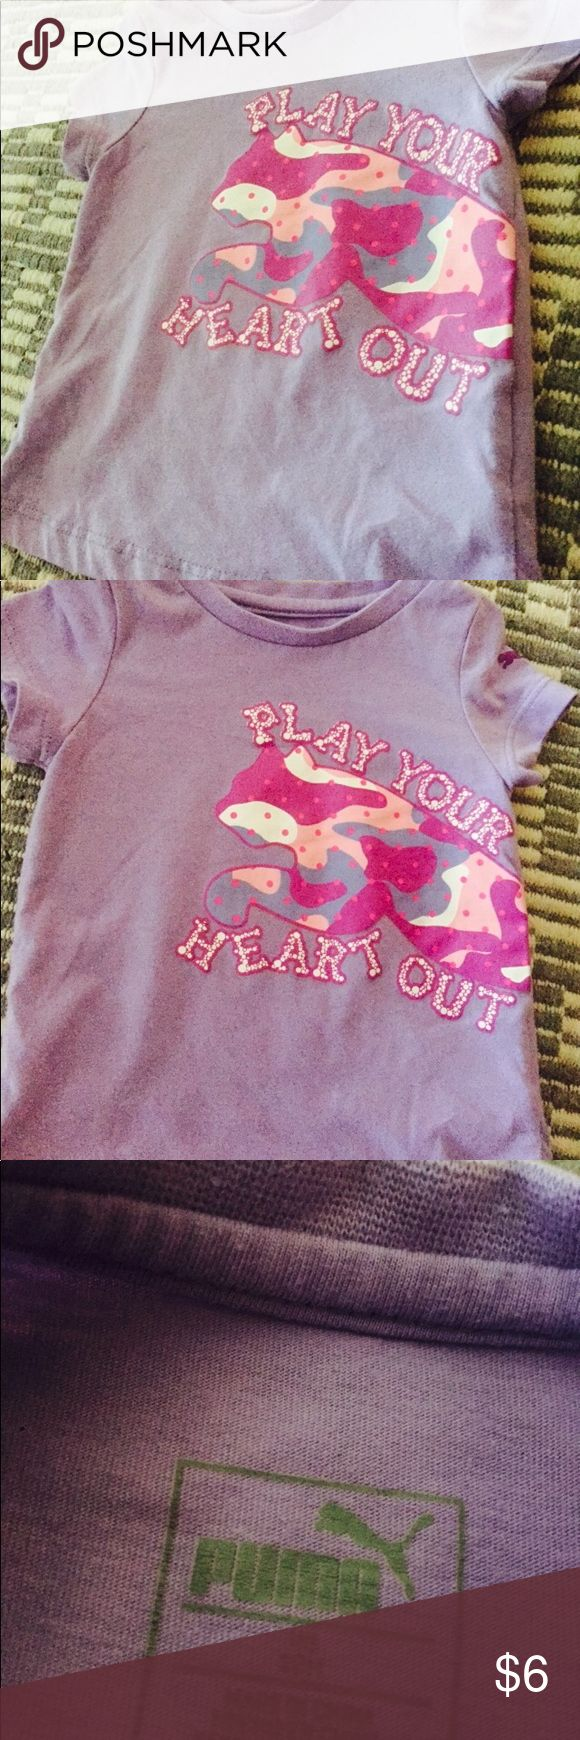 """Puma baby girls 12 months shirt Light Purple shirt with pink and white camo design inside the large puma logo """"play your heart out """" underneath. Size 12 months *************** FOR LOCAL  PICK UP (Tampa ,Florida and surrounding areas ), contact PRICING **************** LIGHTLY USED  